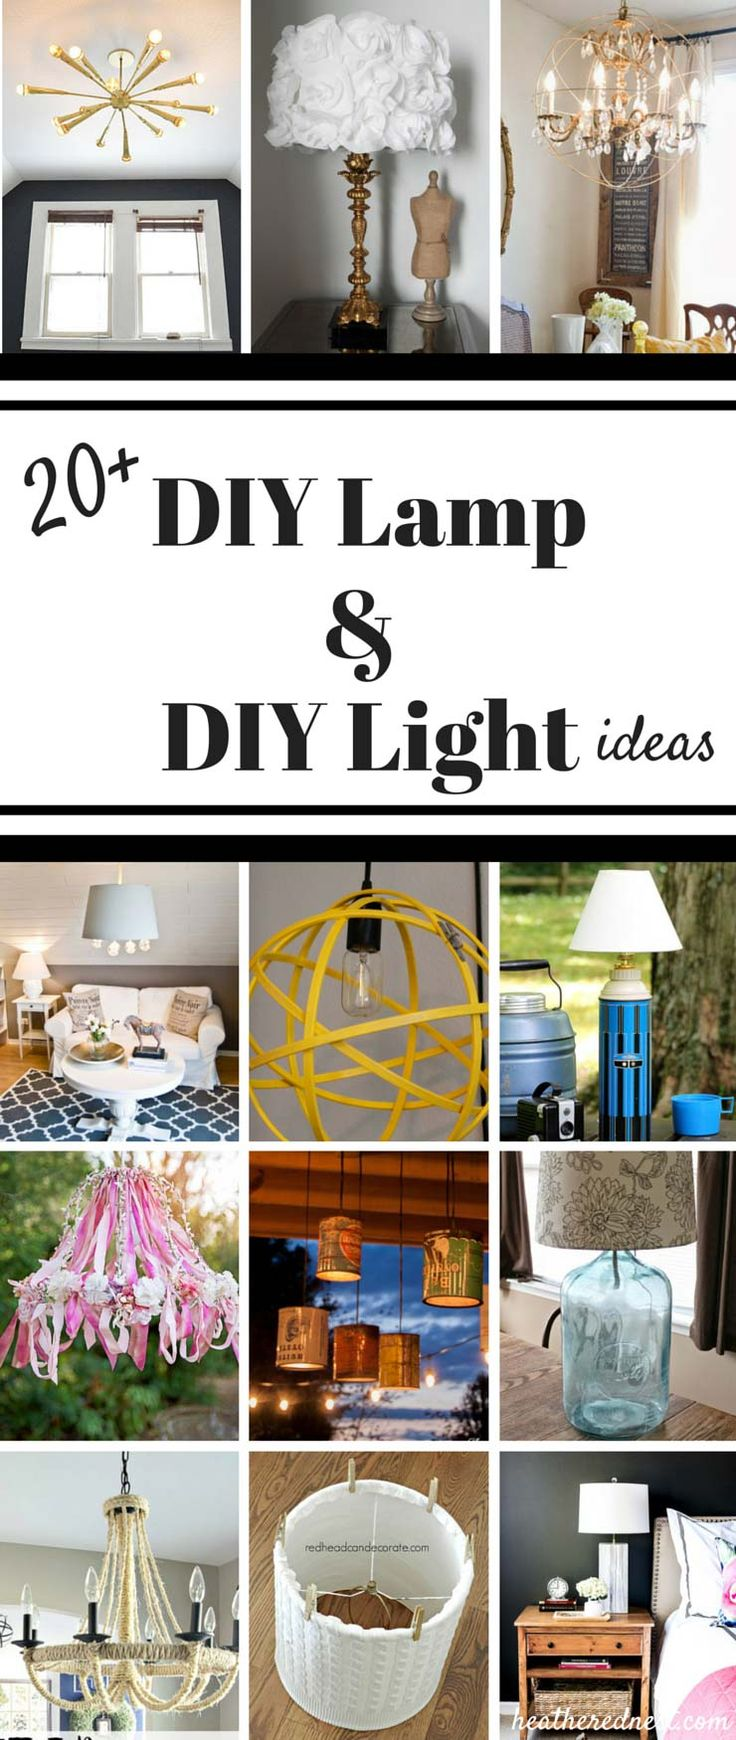 FANTASTIC Round up of 20+ popular DIY lamp, DIY light, and DIY lampshade projects and ideas from www.heatherednest.com